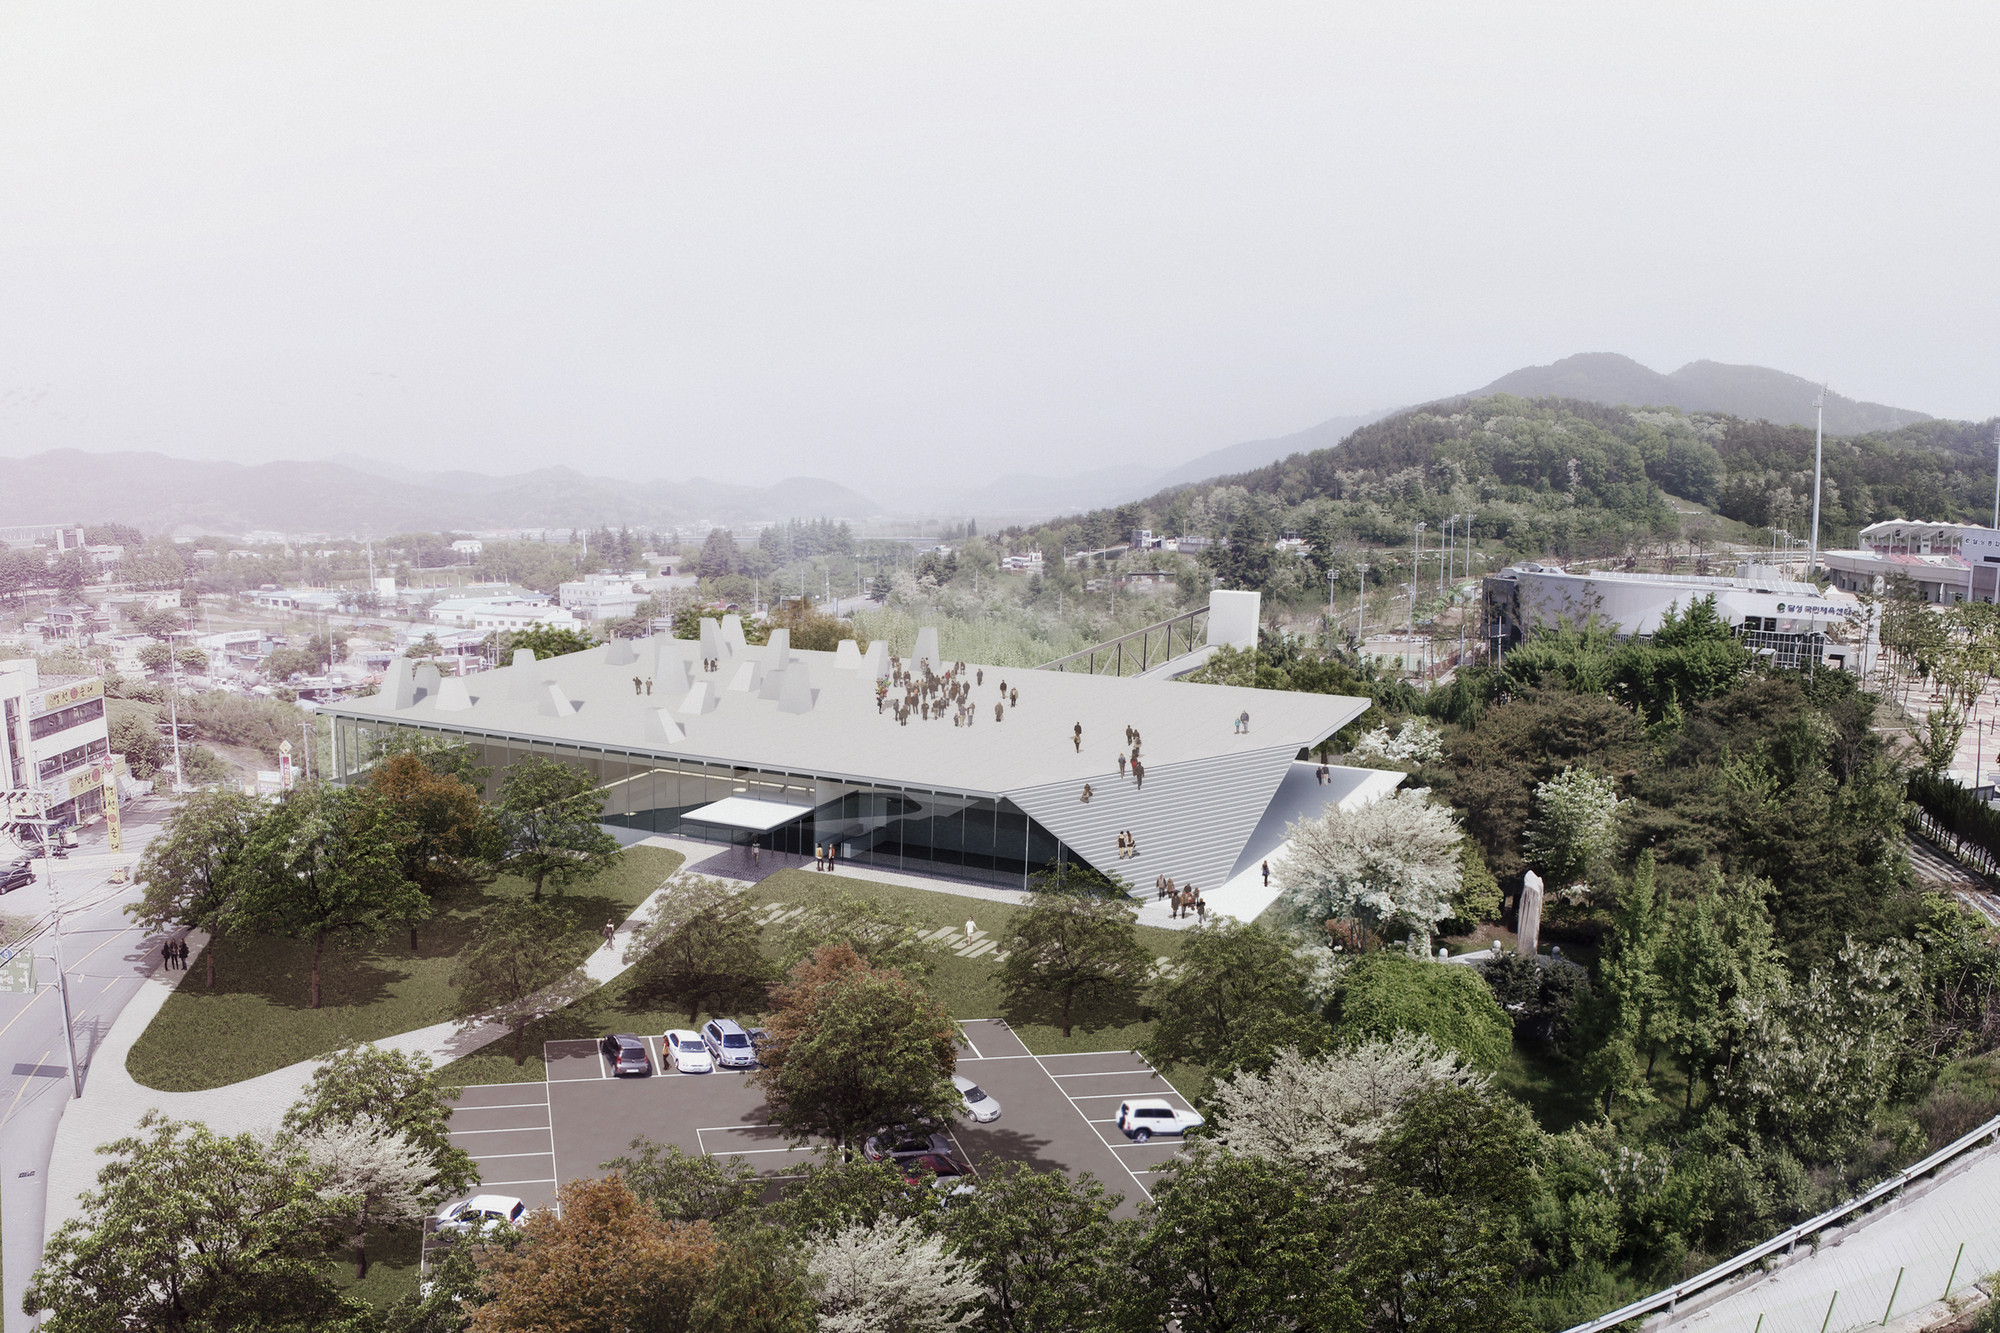 Competition Entry: Pedro Livni + Fernando De Rossa's Proposal for Dalseong Citizen's Gymnasium, © Pedro Livni + Fernando De Rossa